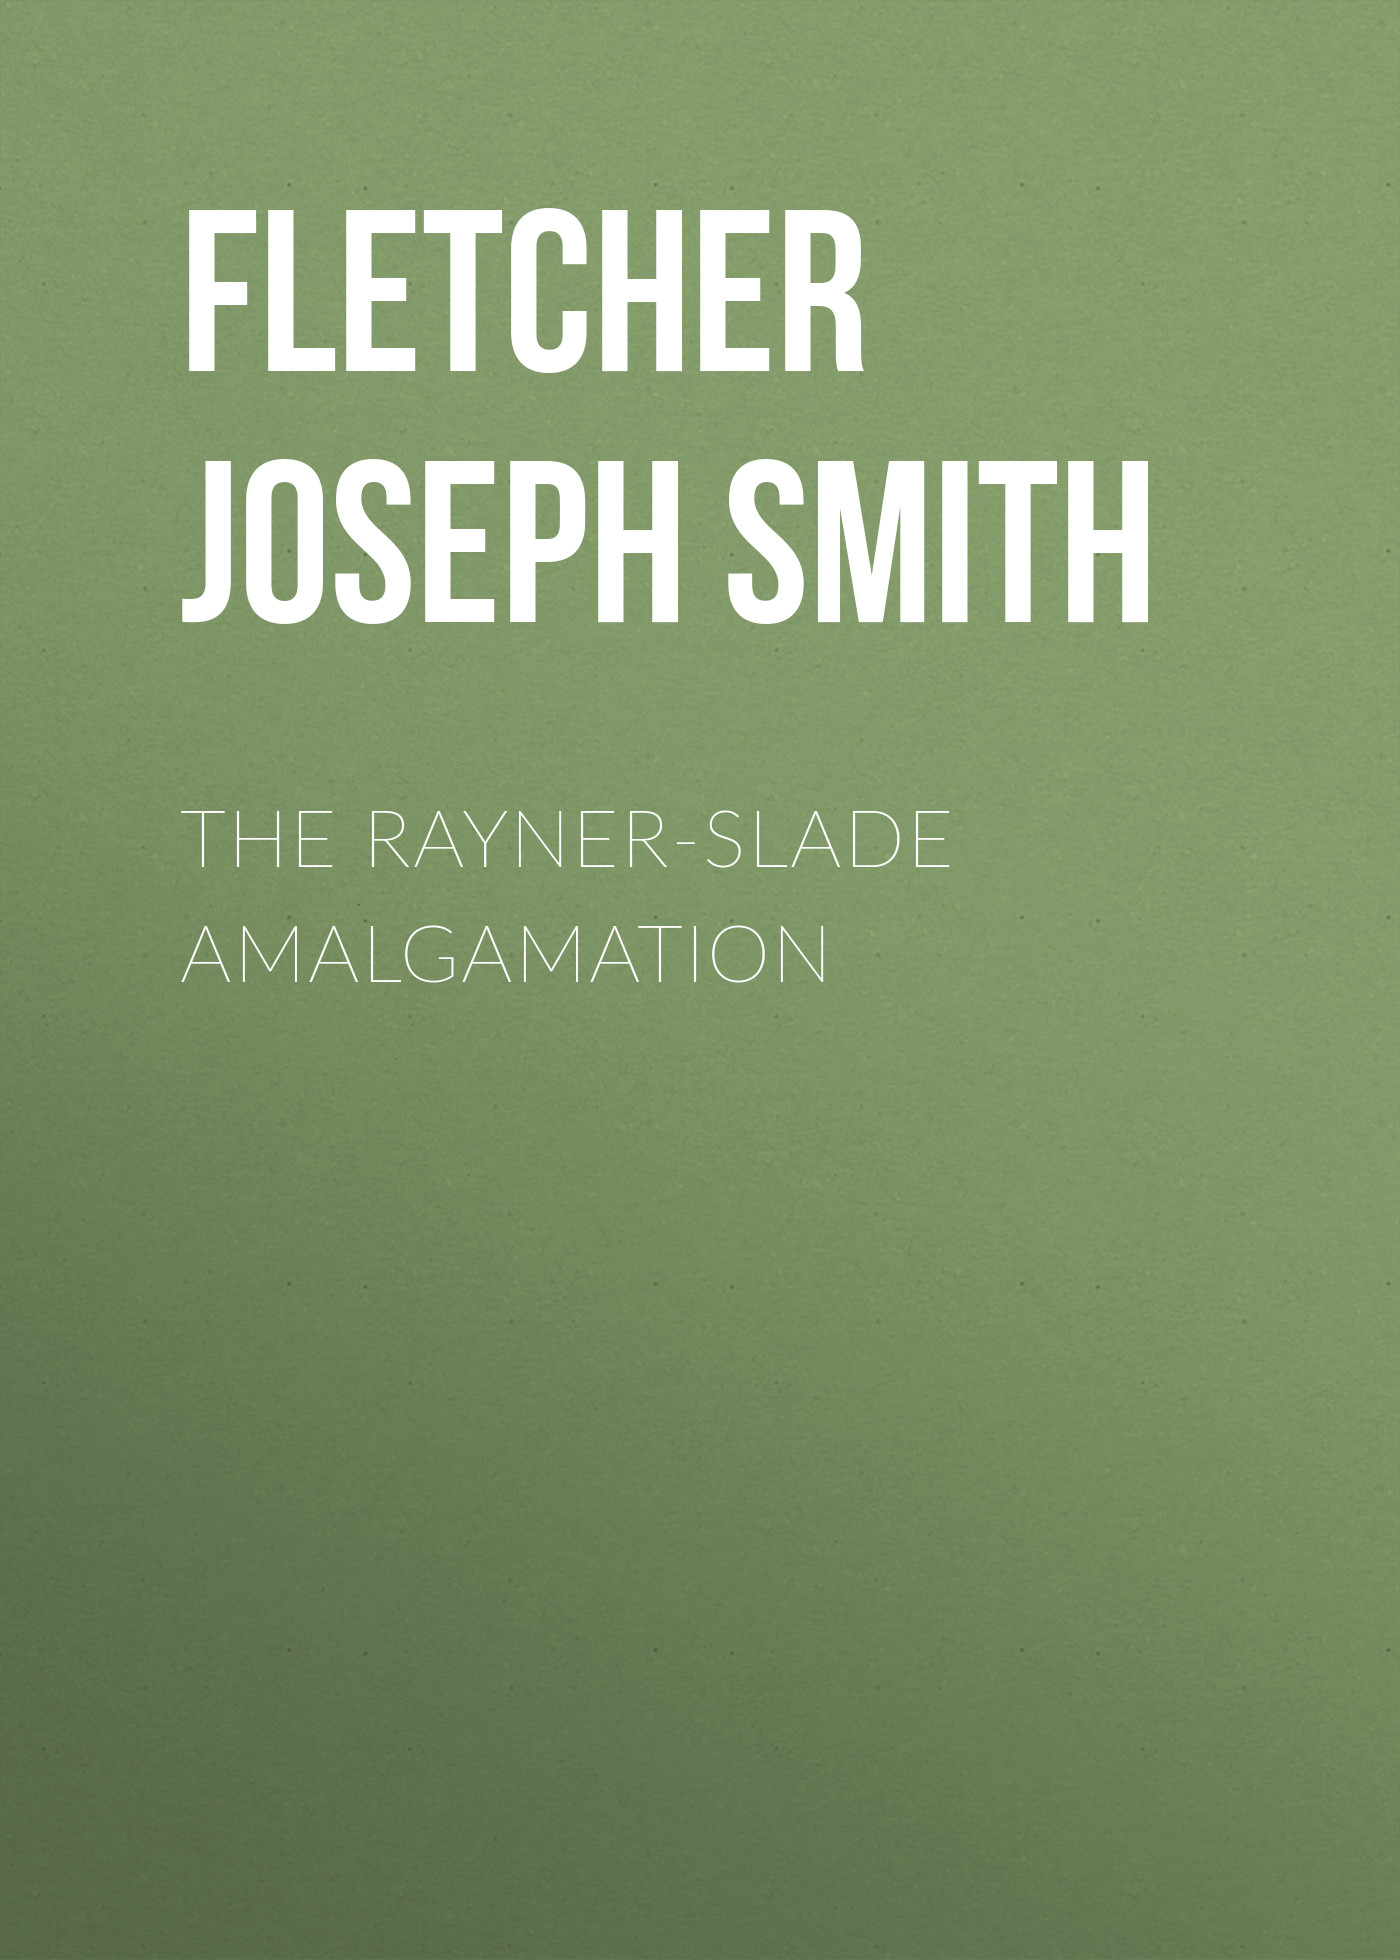 Fletcher Joseph Smith The Rayner-Slade Amalgamation fletcher horace the new glutton or epicure